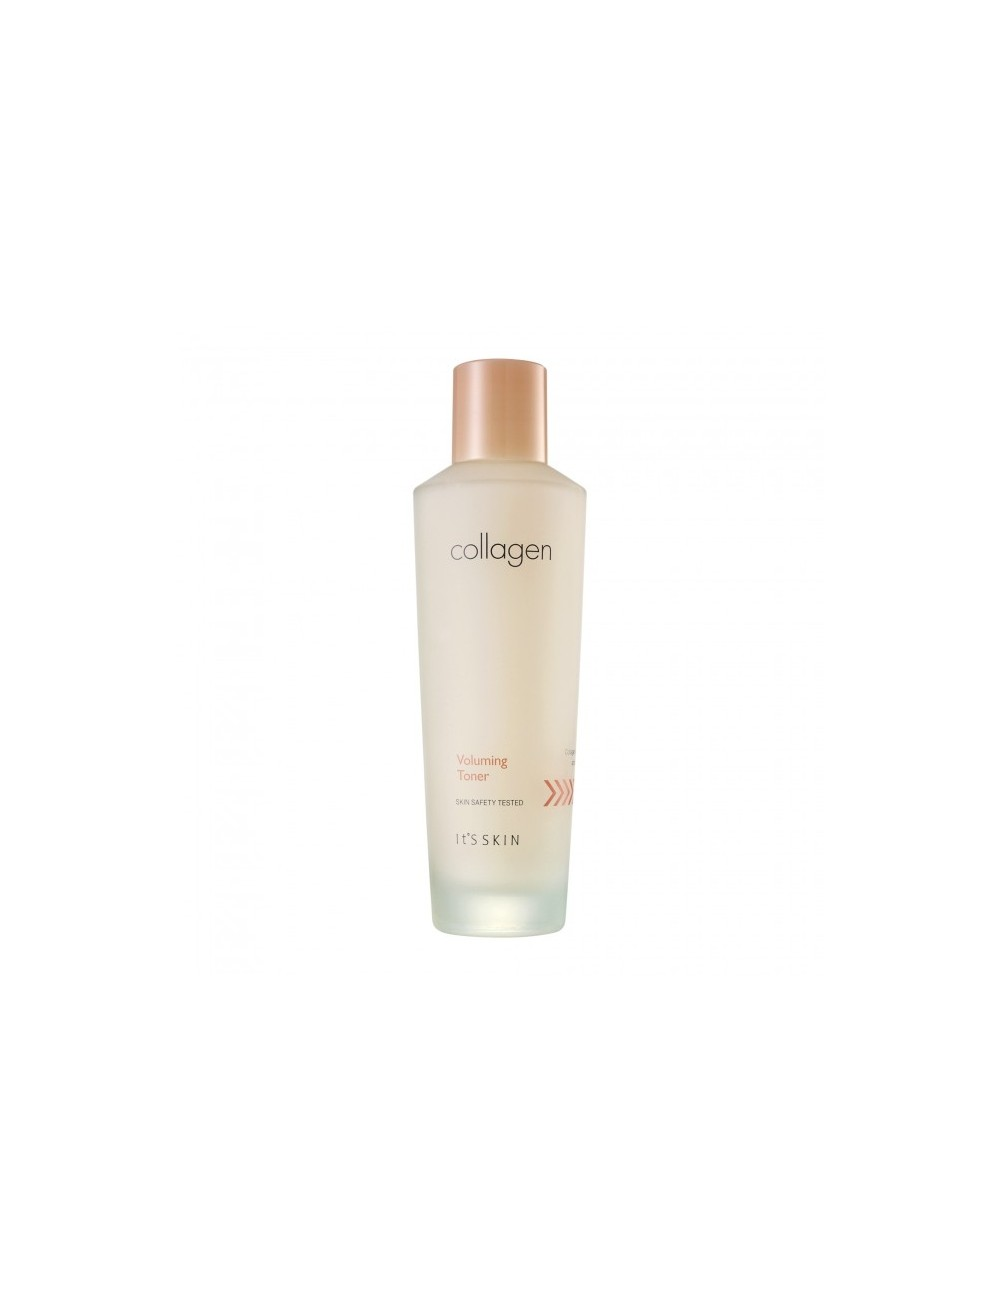 Tónico Reafirmante con Colageno It's Skin - Collagen Voluming Toner -Cosmética Coreana